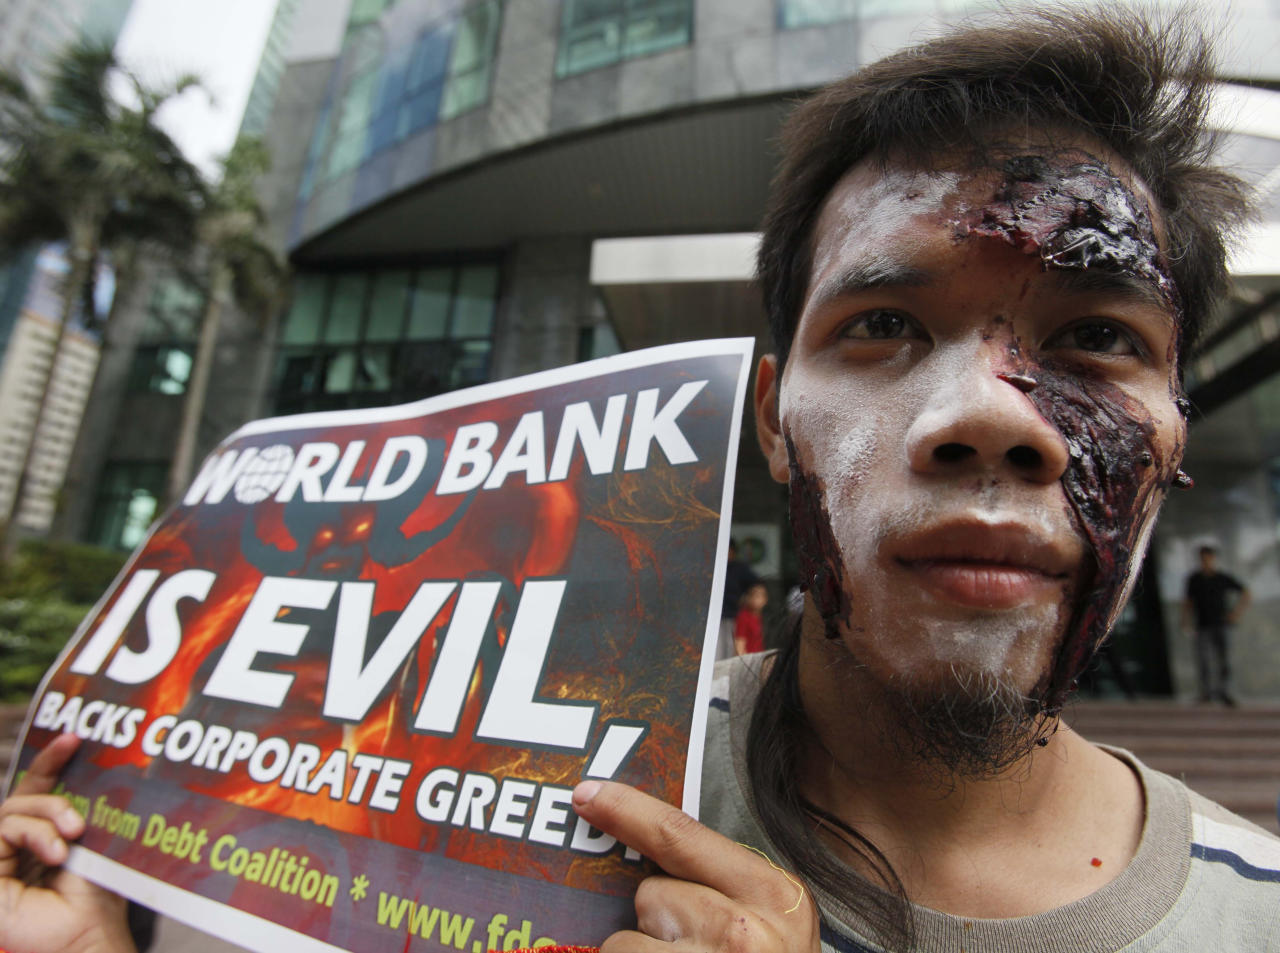 A protester, sporting his Halloween costume and makeup, displays a placard as they picket the World Bank office Thursday Oct. 27, 2011 where visiting World Bank President Robert Zoellick is holding a news conference at suburban Mandaluyong, east of Manila, Philippines. Zoellick welcomed a deal clinched by European leaders to address their two-year debt crisis, saying it may have helped avert the spread of the financial turmoil to emerging markets that provide half of global economic growth. (AP Photo/Bullit Marquez)